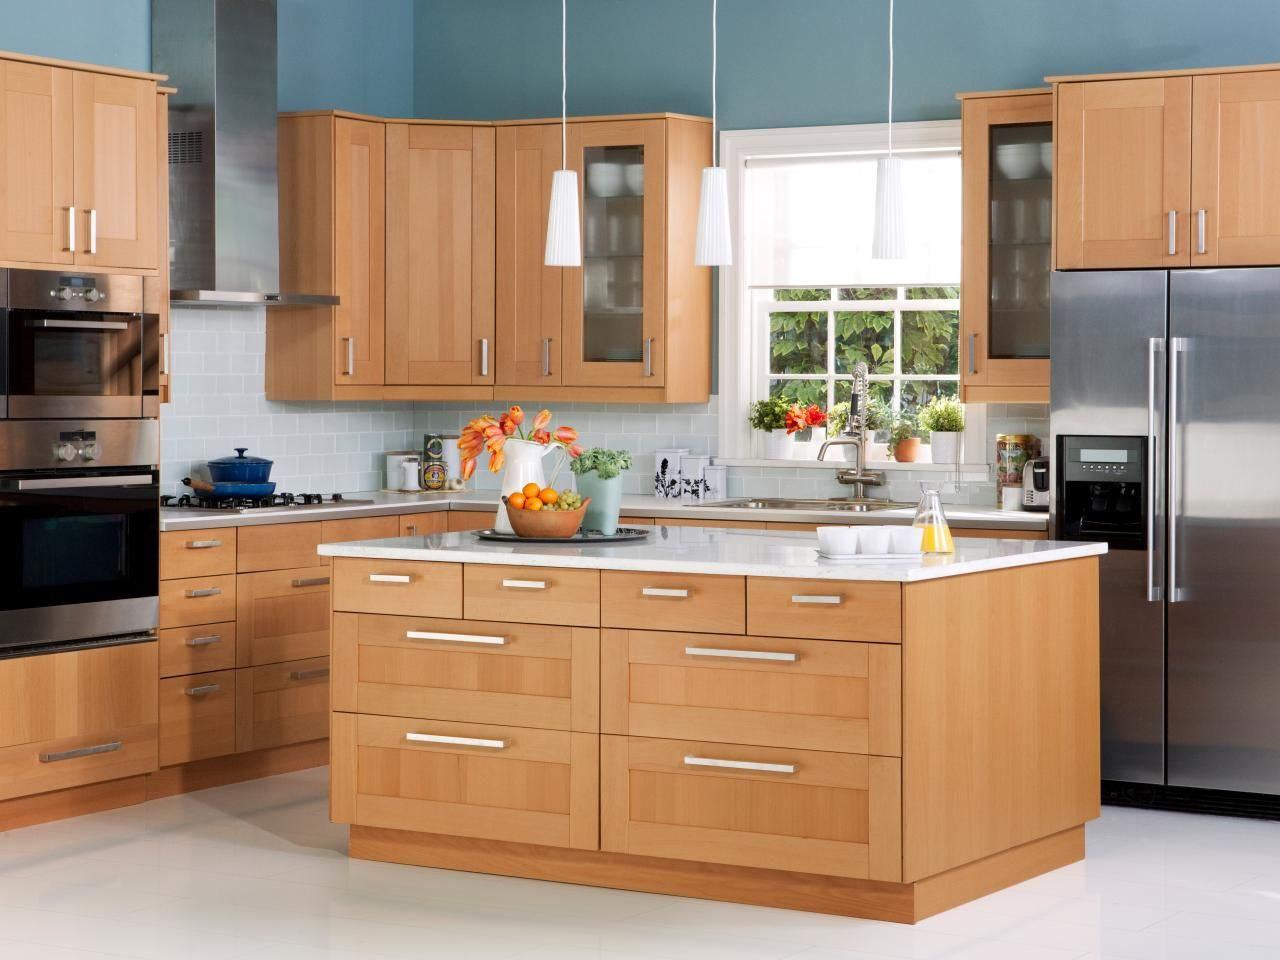 kitchen cabinets sets pin by archambault on fantastic kitchen ideas 3232